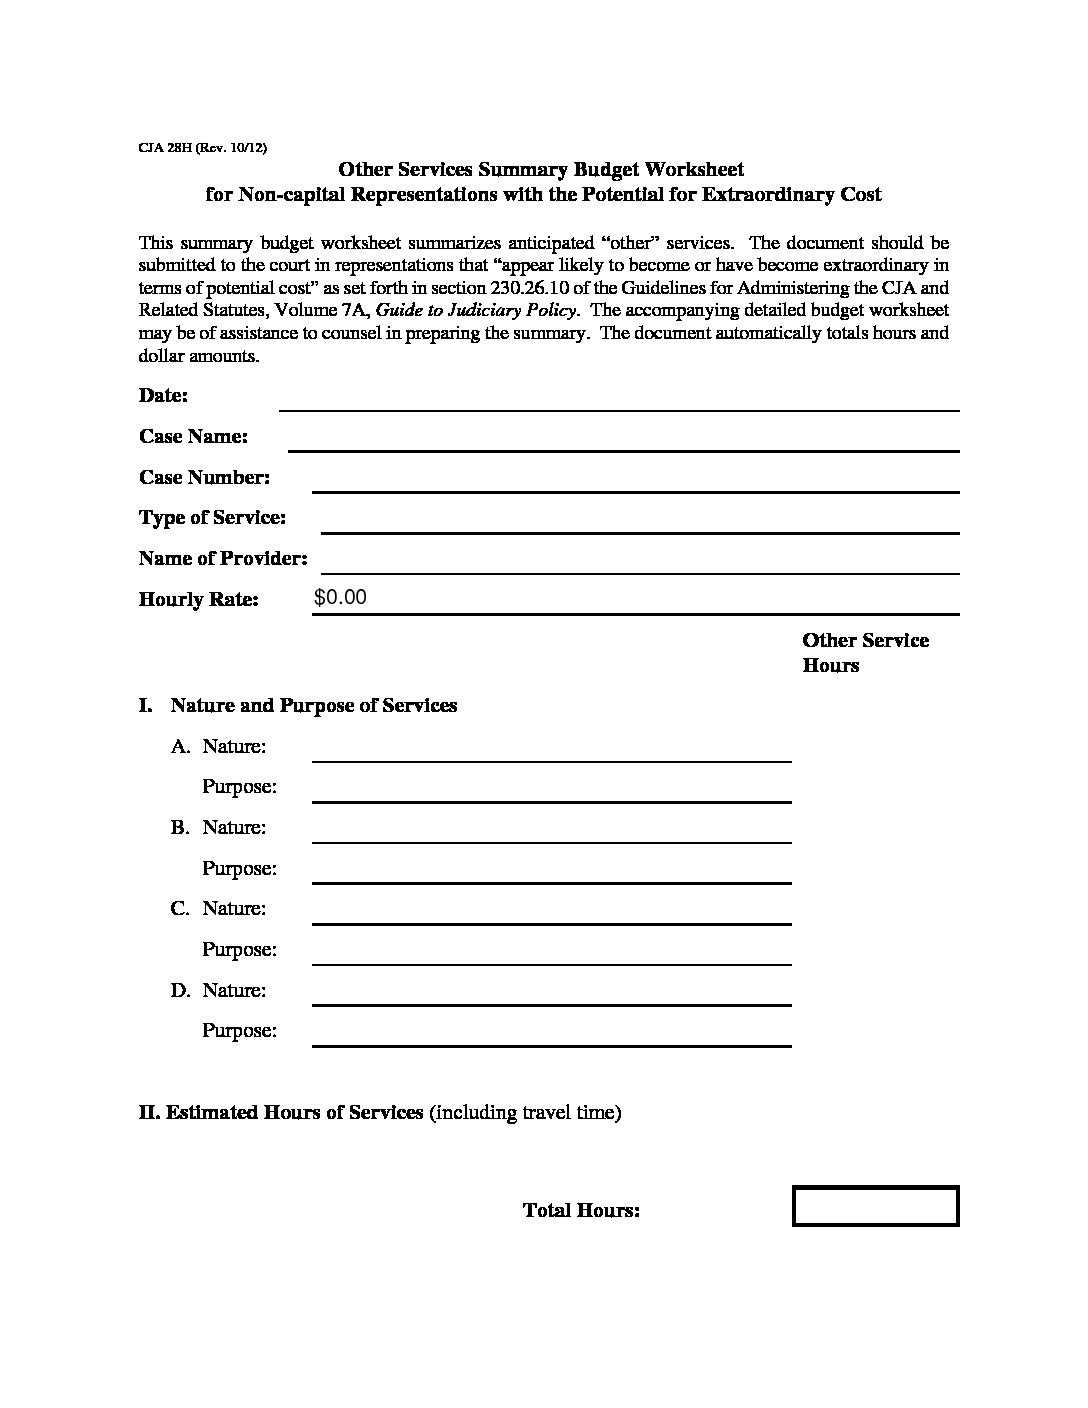 Cja28h Other Services Summary Budget Worksheet For Non